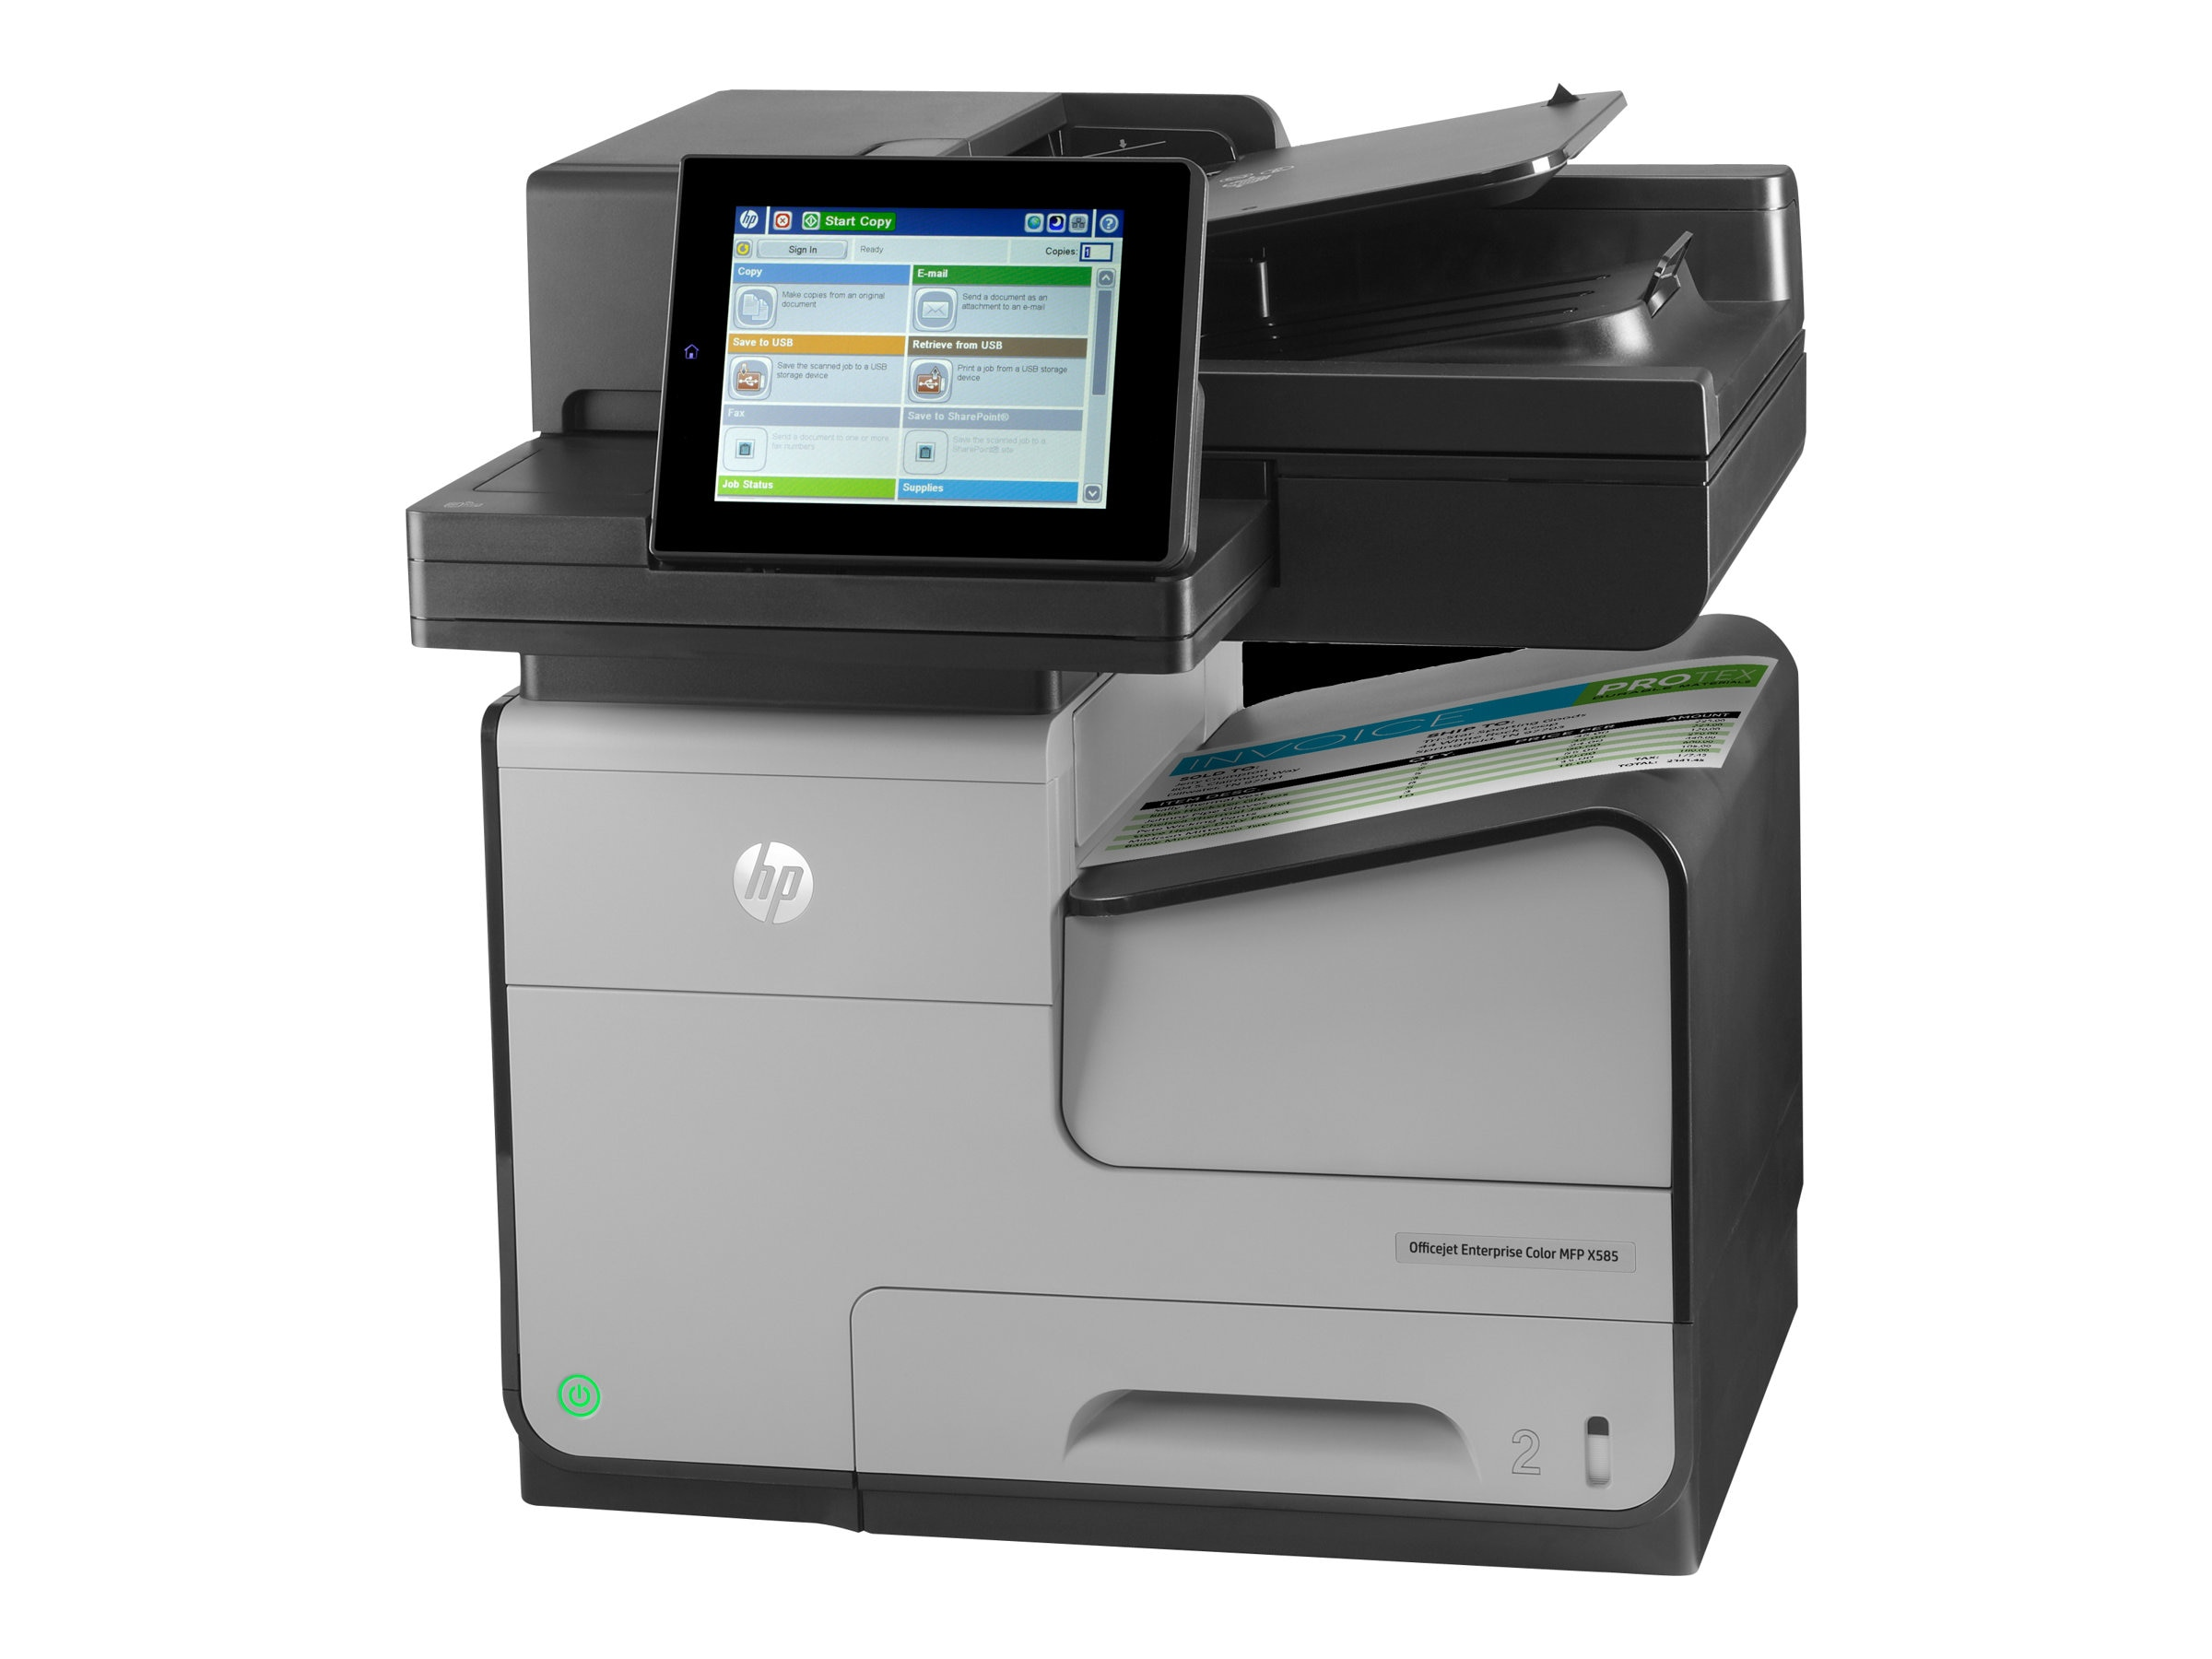 HP Officejet Ent. Color Flow X585z MFP Printer $2,799 - $690 instant rebate = $$2,109 expires 2 29 16, B5L06A#BGJ, 16837593, MultiFunction - Ink-Jet